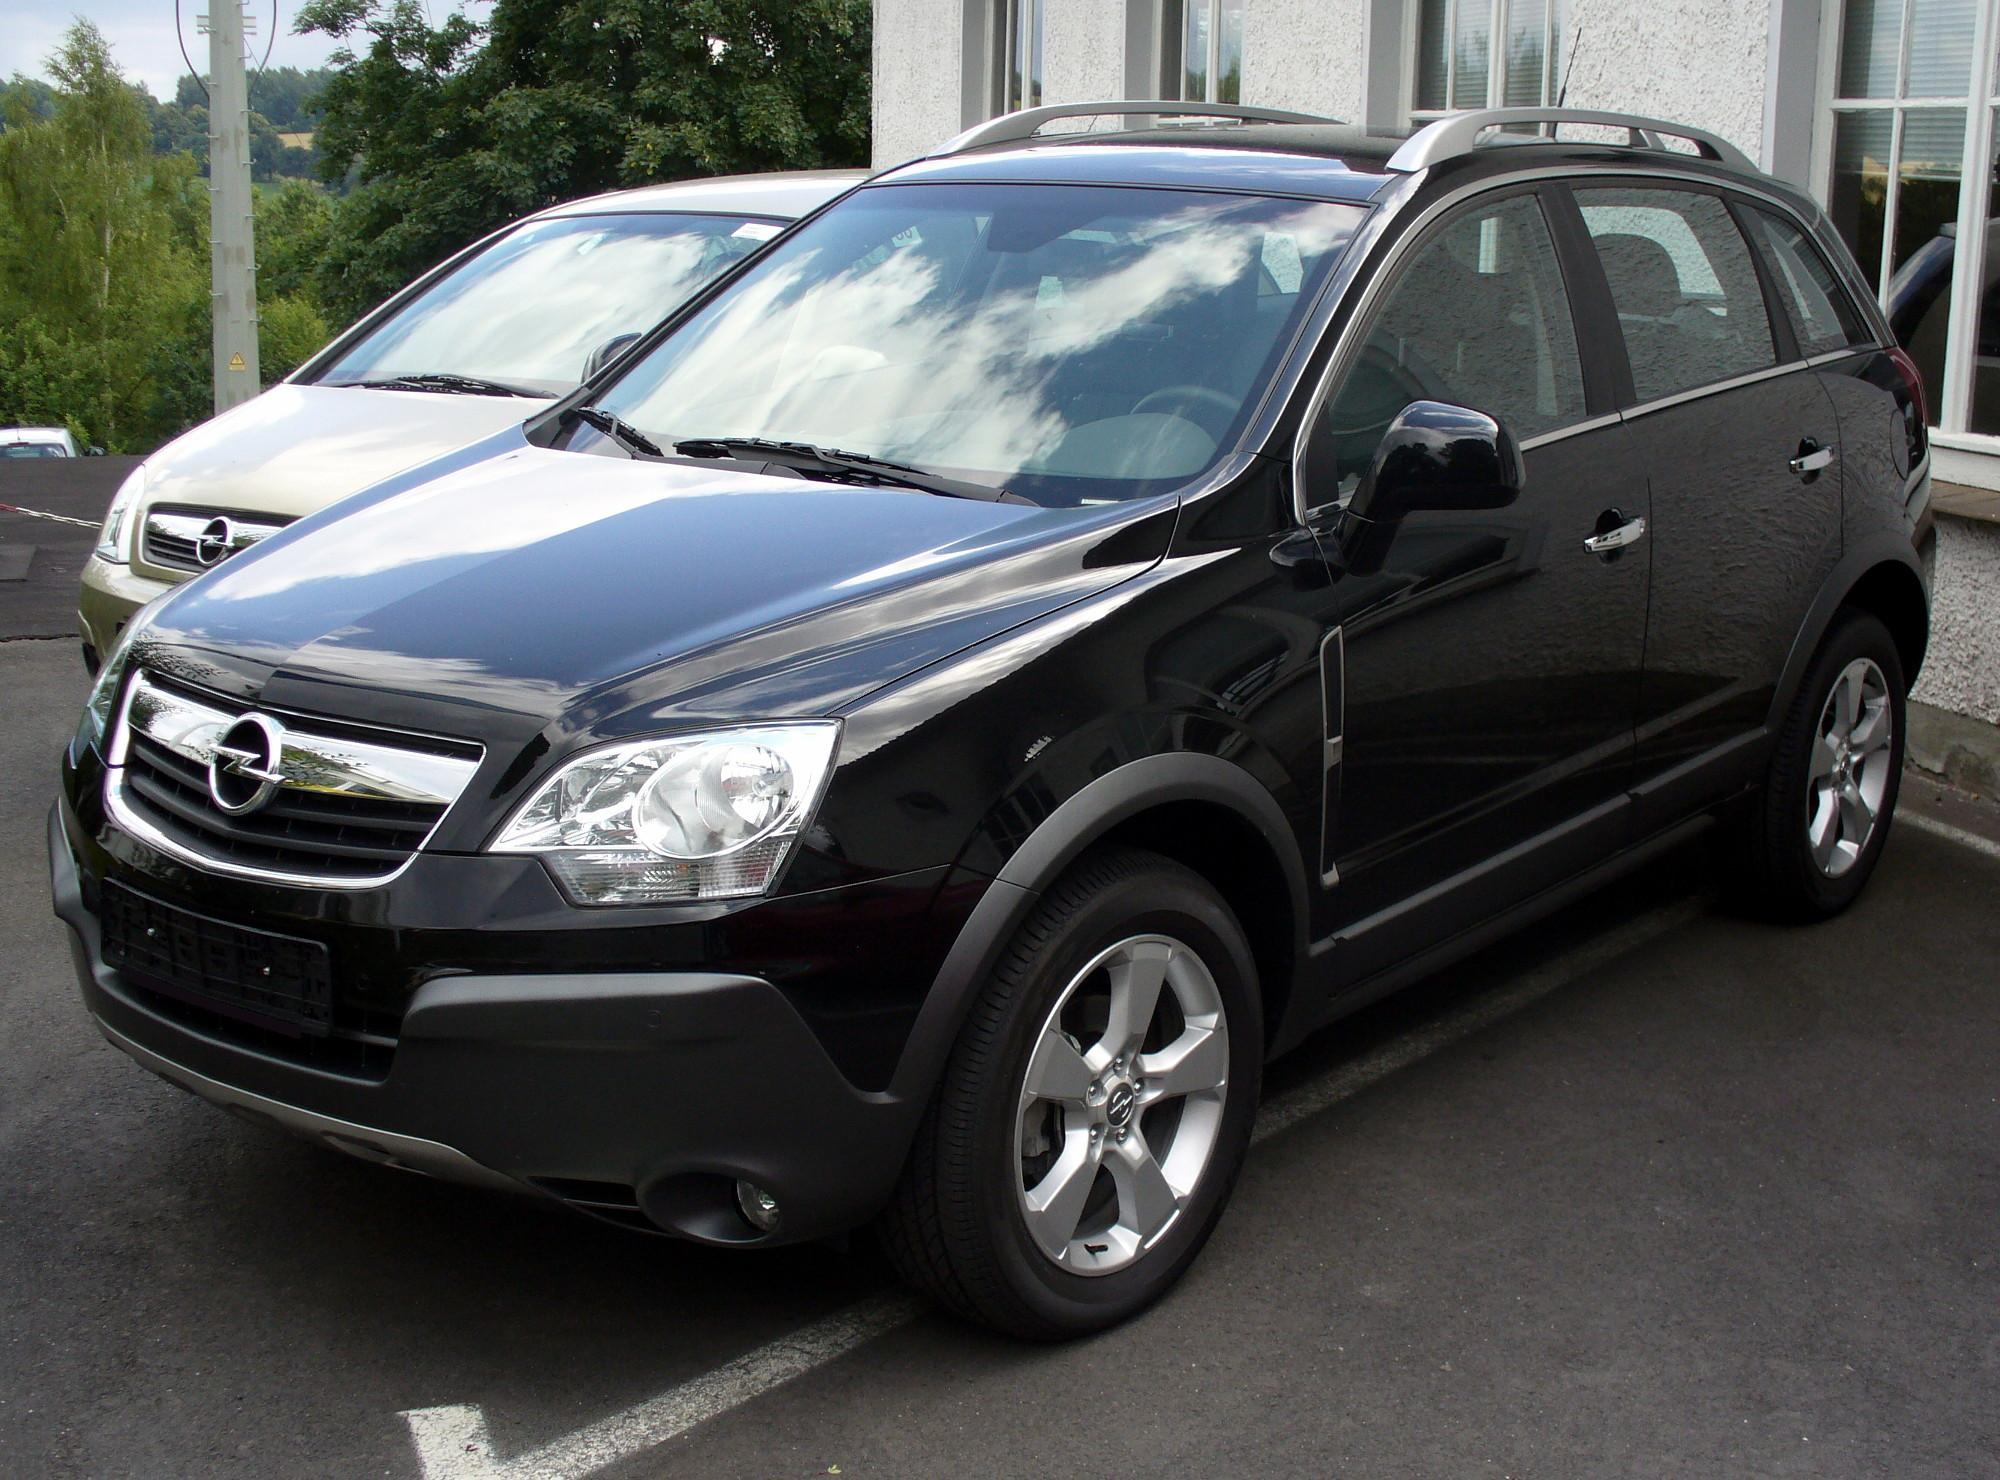 2008 opel antara pictures information and specs auto. Black Bedroom Furniture Sets. Home Design Ideas